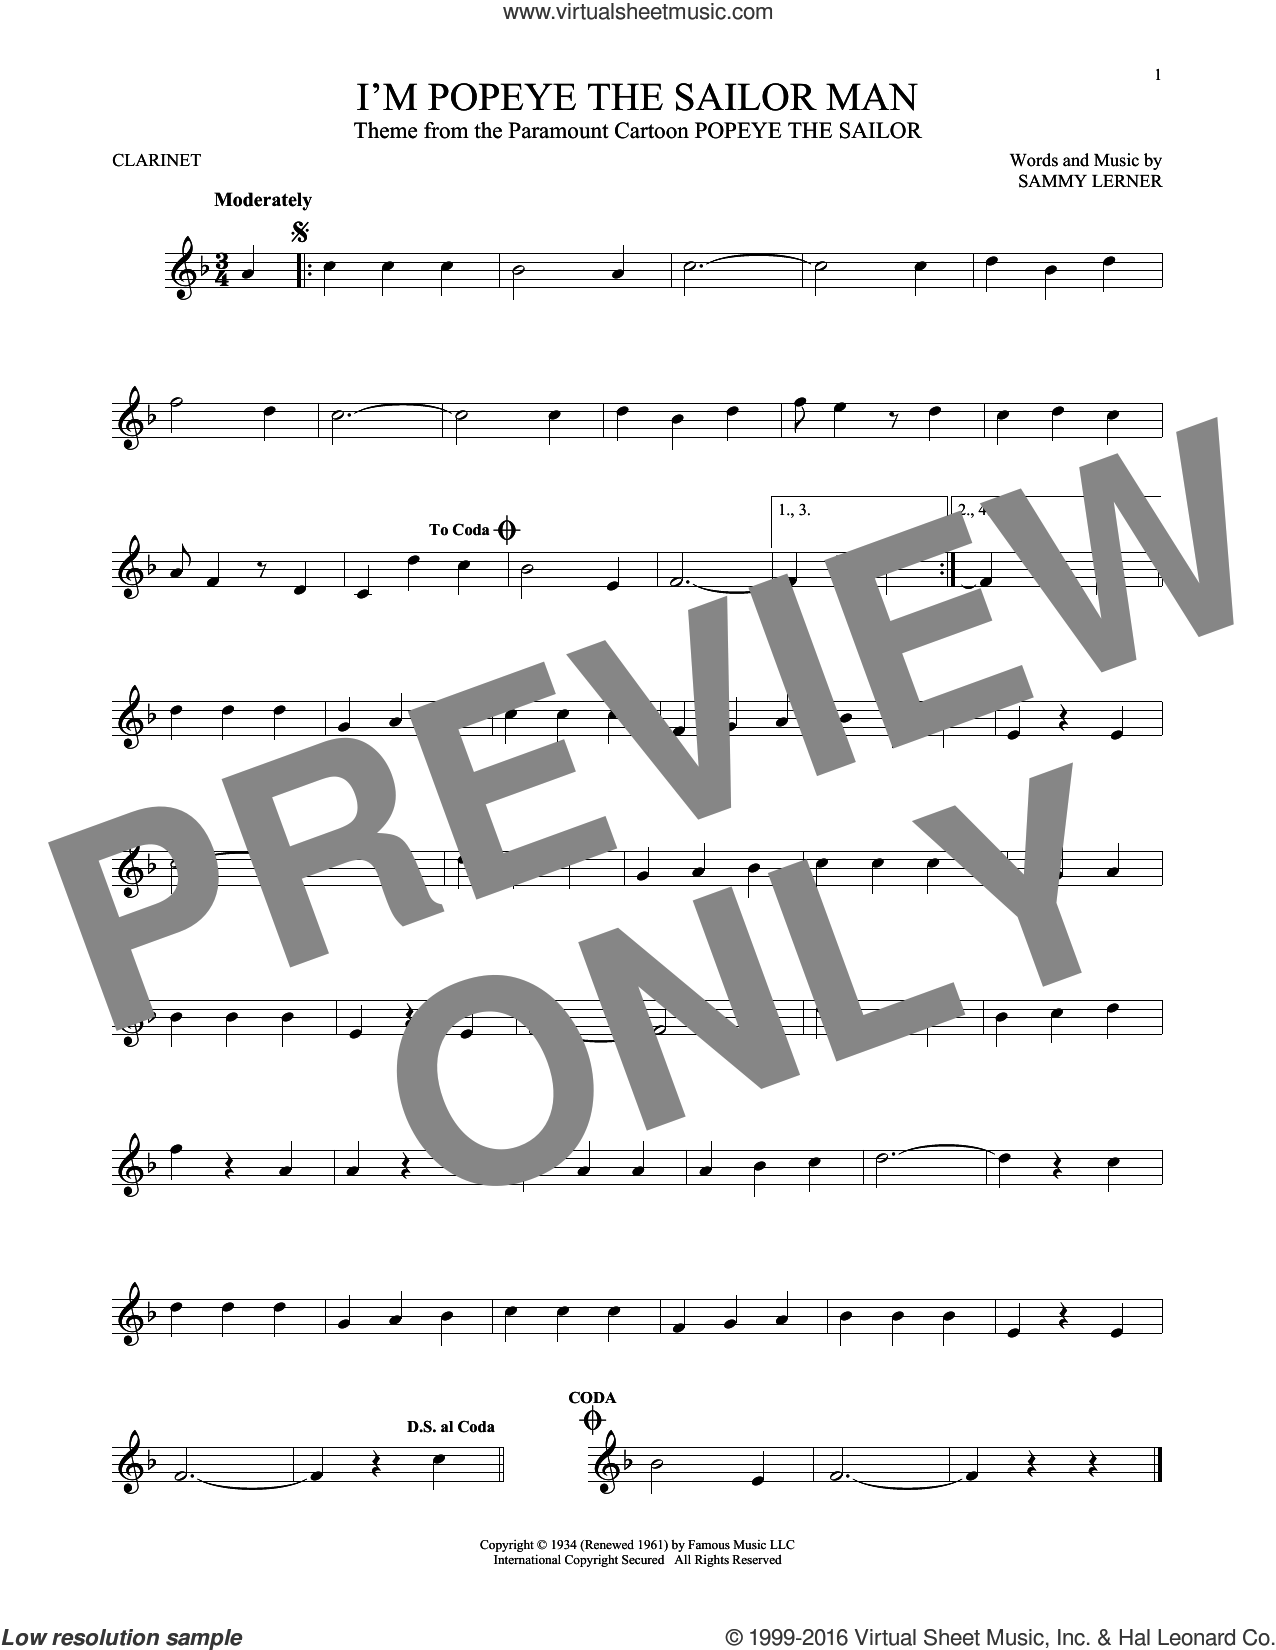 I'm Popeye The Sailor Man sheet music for clarinet solo by Sammy Lerner, intermediate skill level